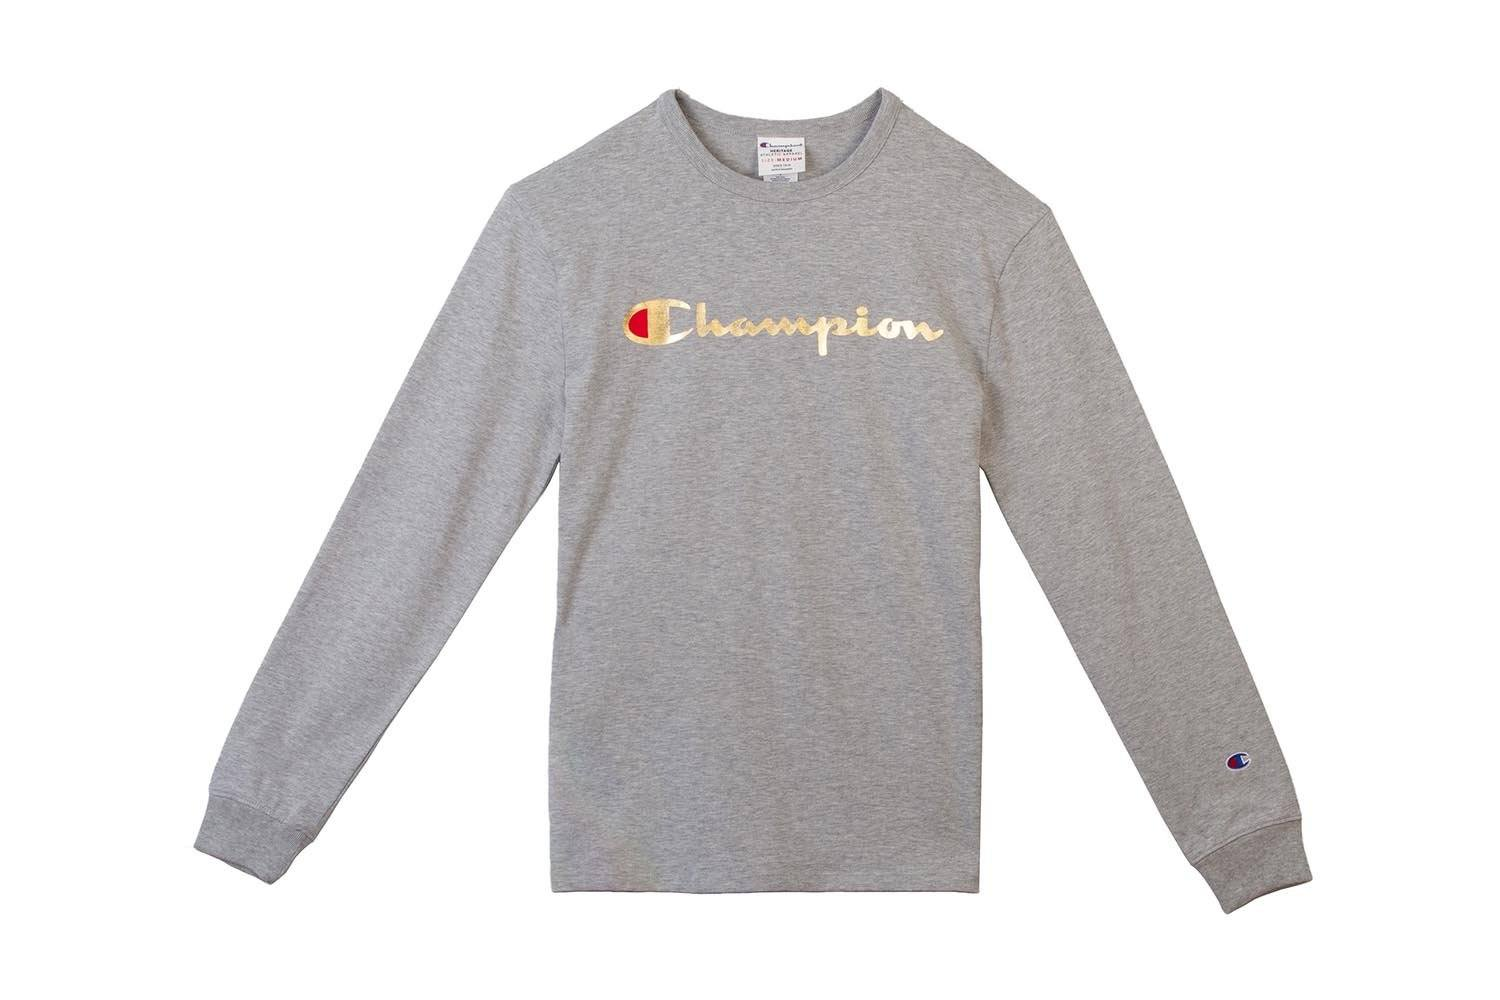 HERITAGE LS TEE-MULTI TECHNIQUE GRAPHIC - T3822 MENS SOFTGOODS CHAMPION